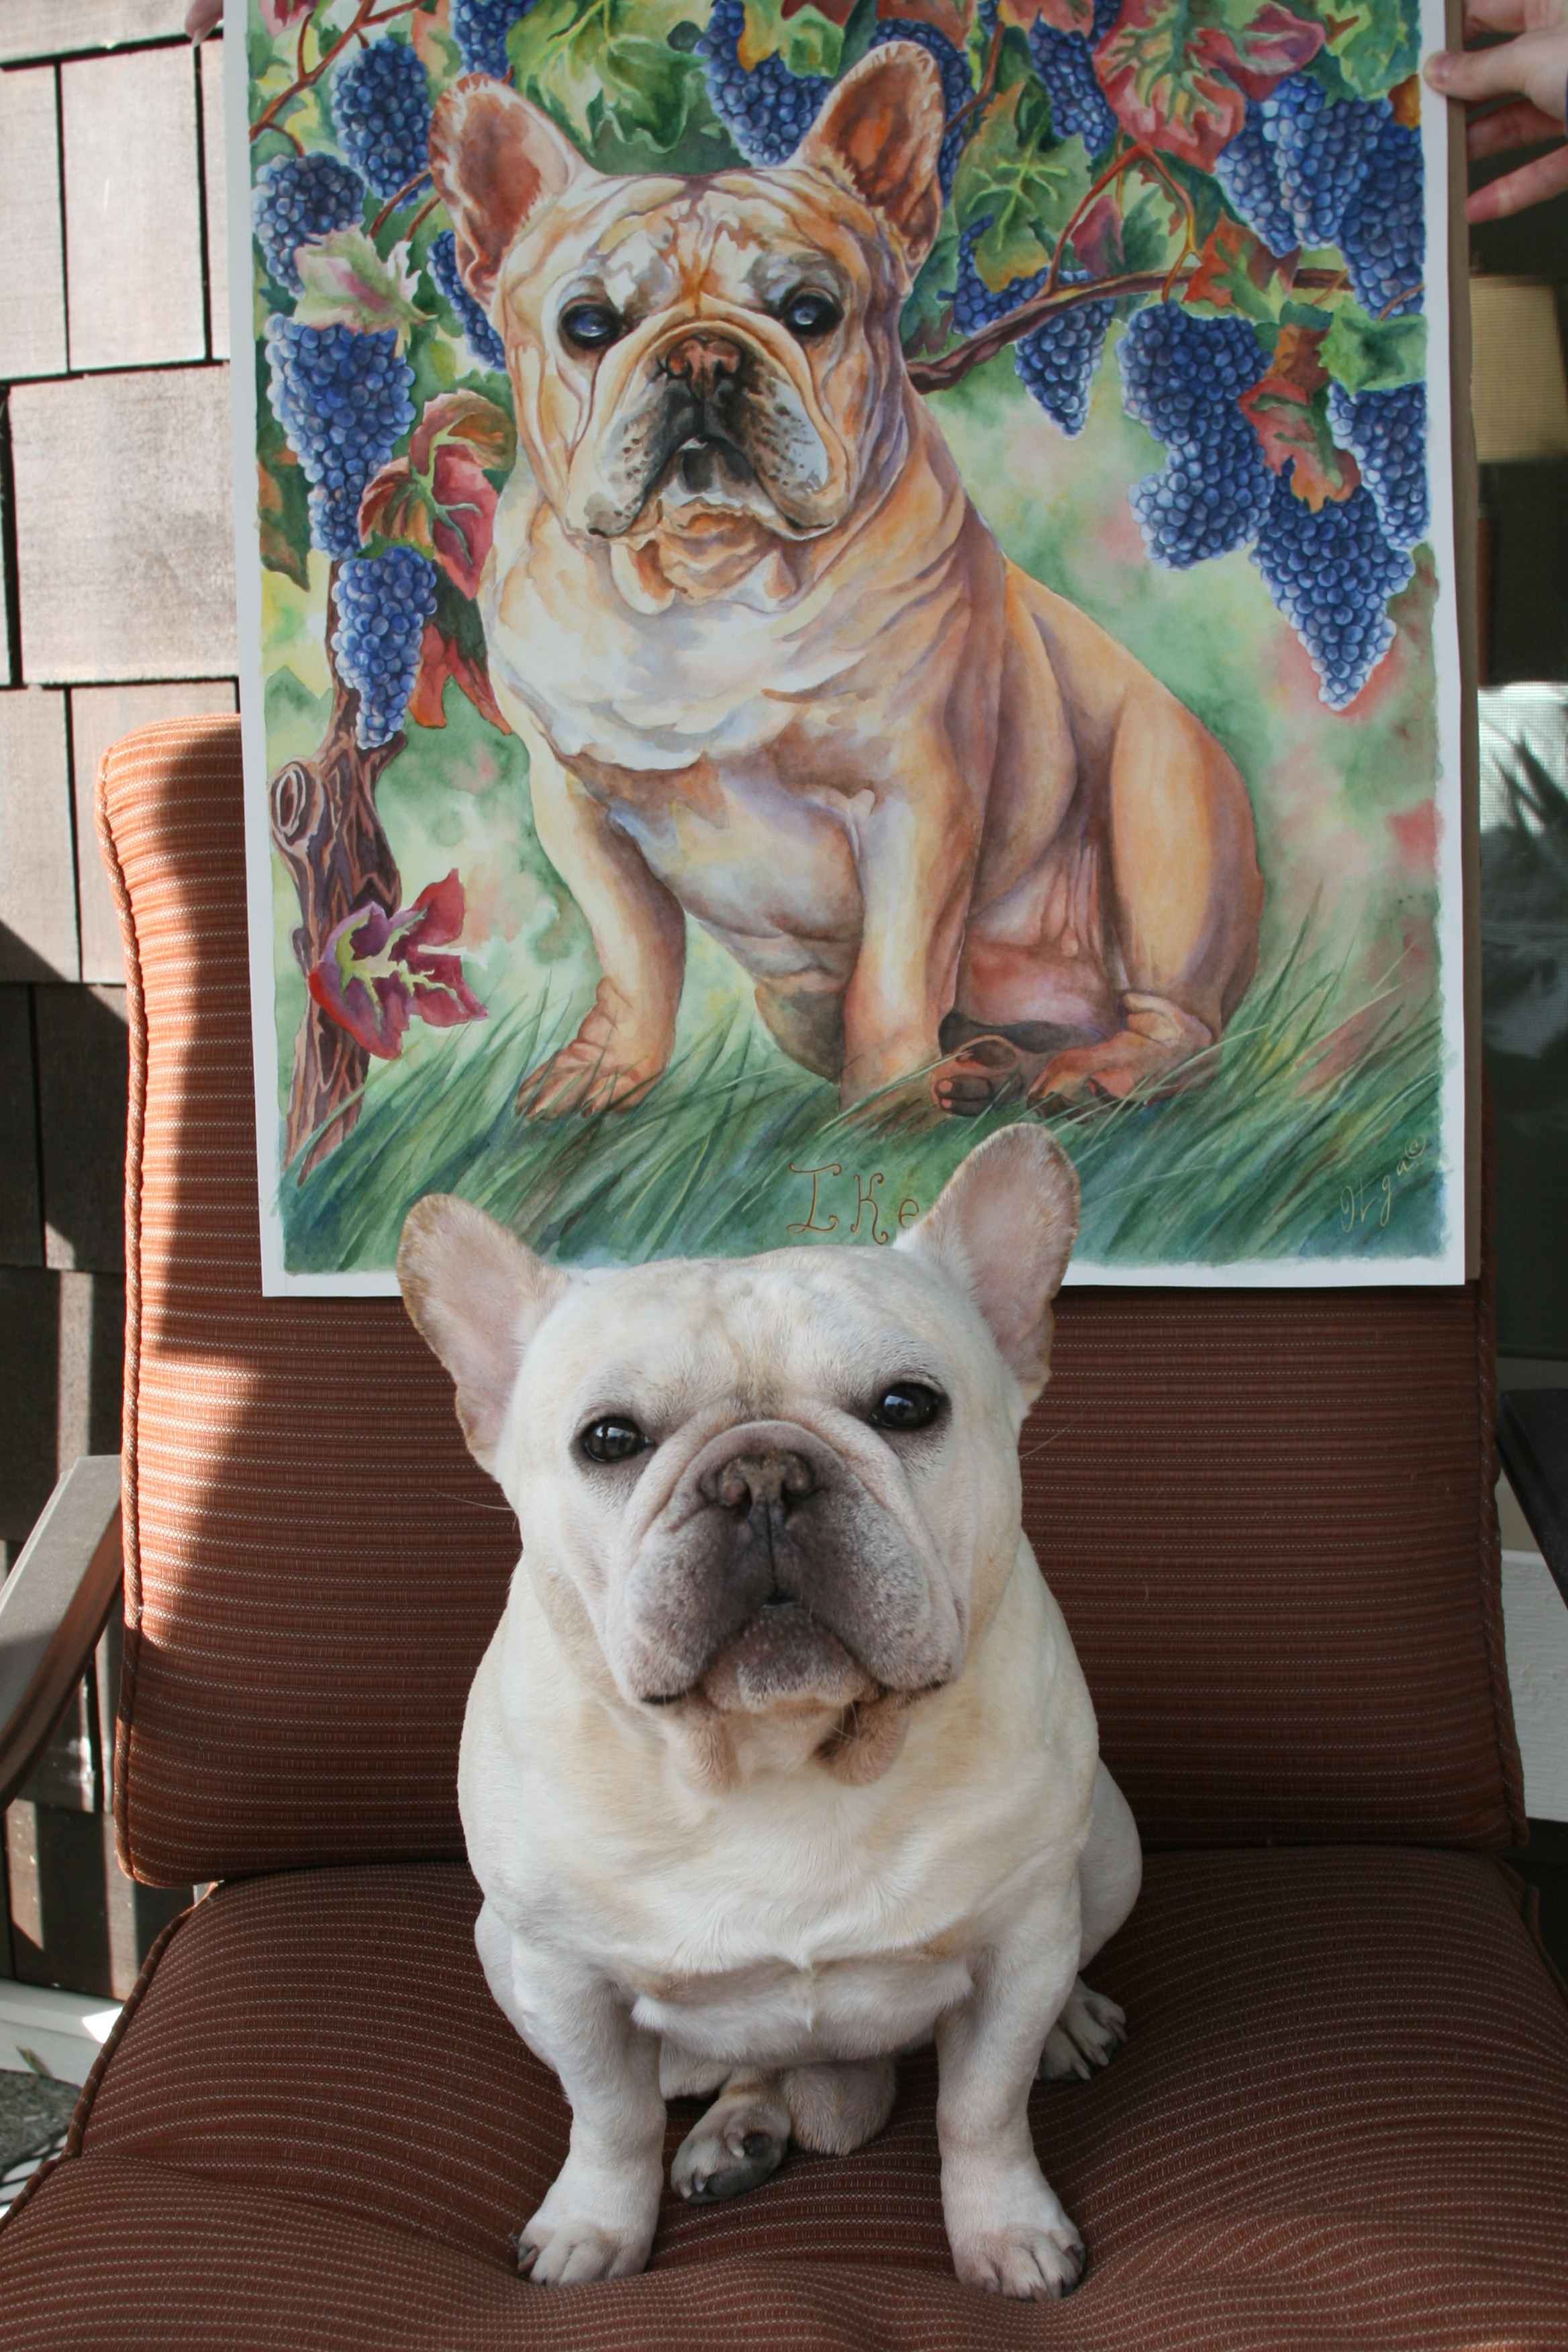 Ike posing next to his portrait    February 2016